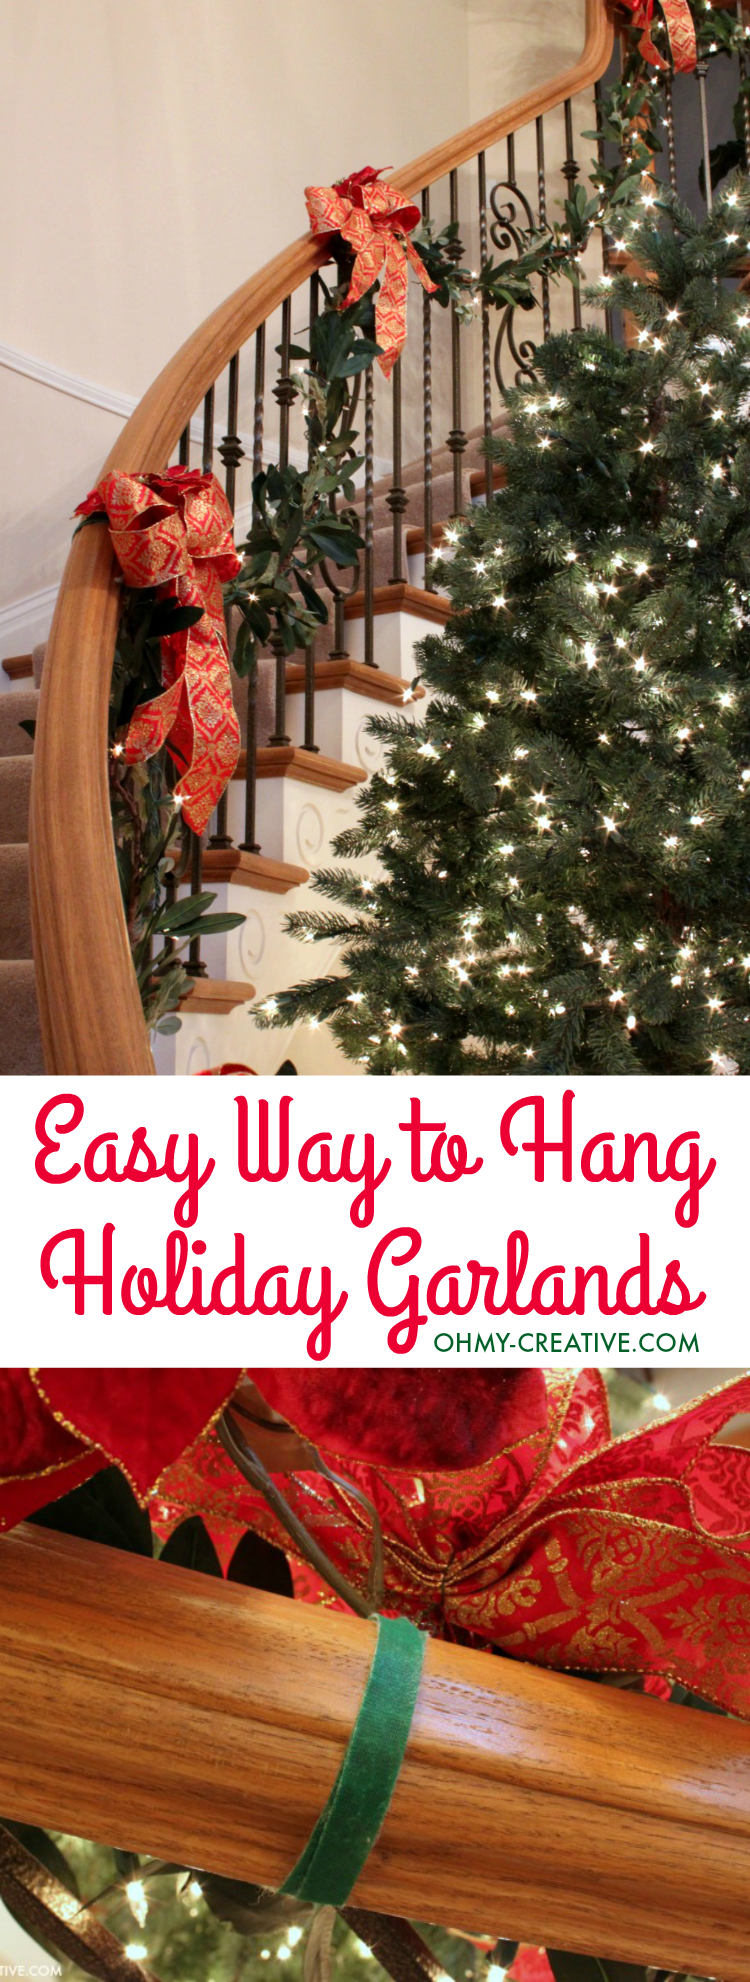 How To Hang Garland On Staircase Banisters Holiday Door Ideas